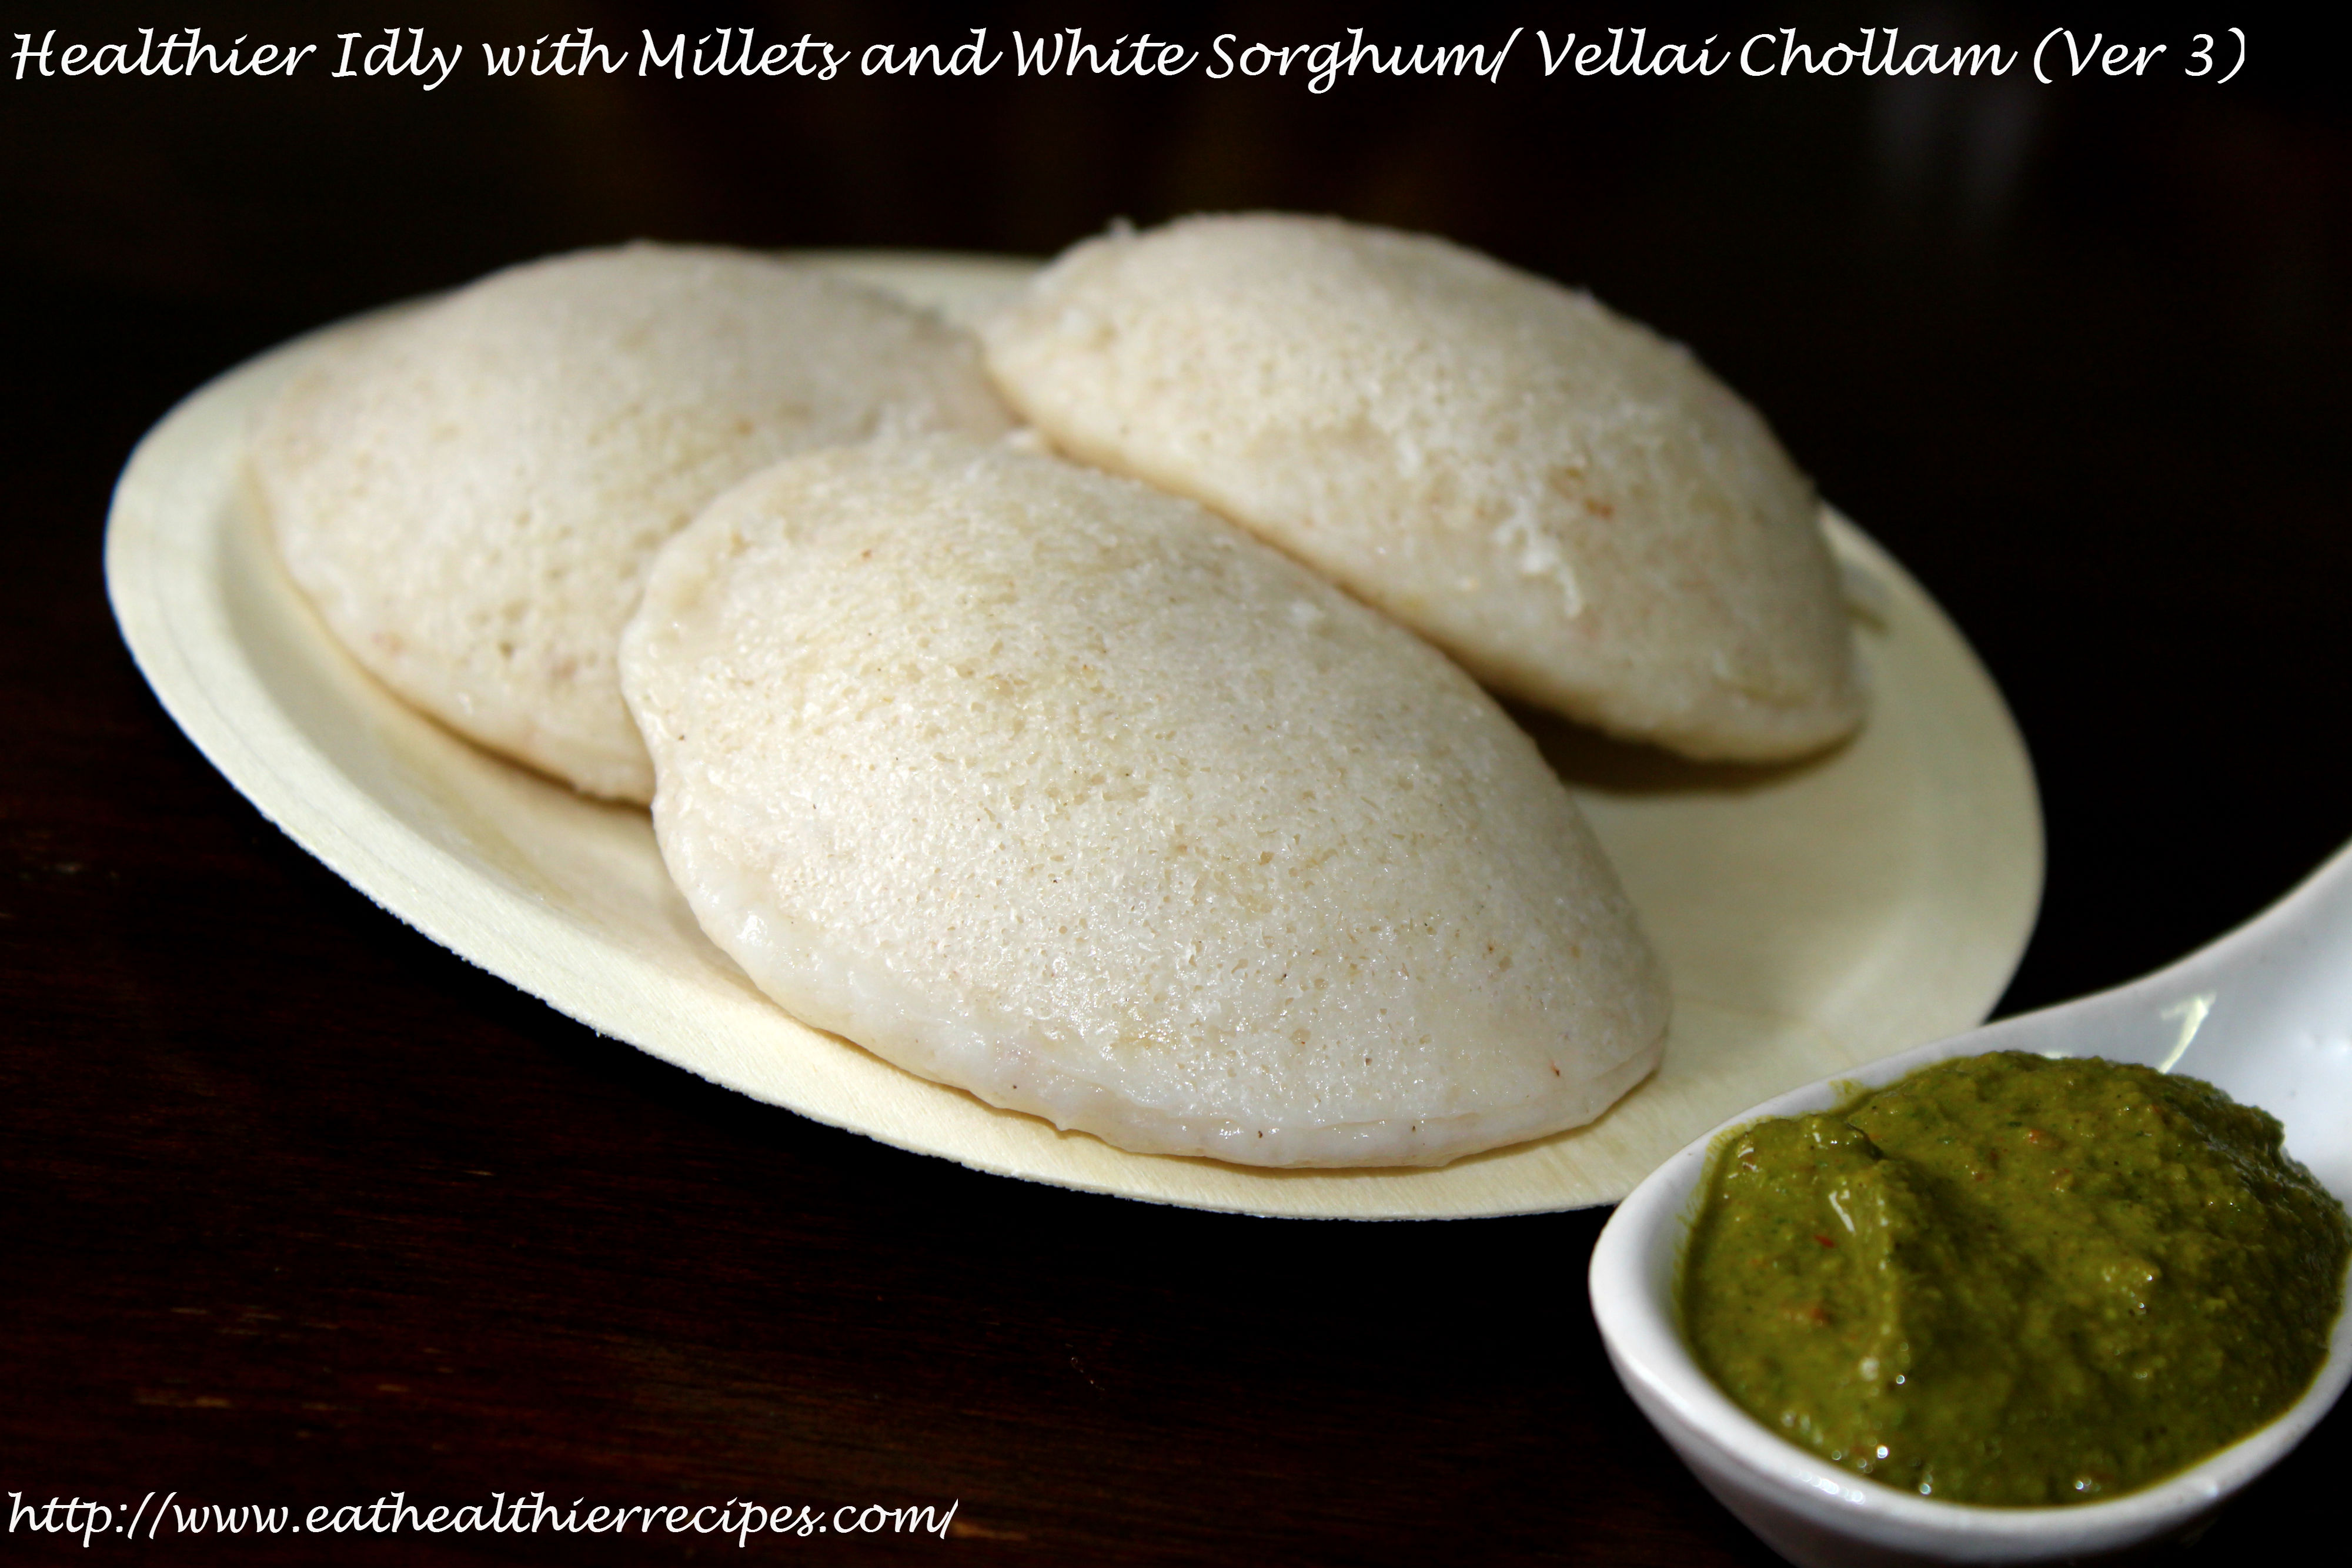 Healthier Idly with Millets and White Sorghum/ Vellai Chollam (Ver 3)